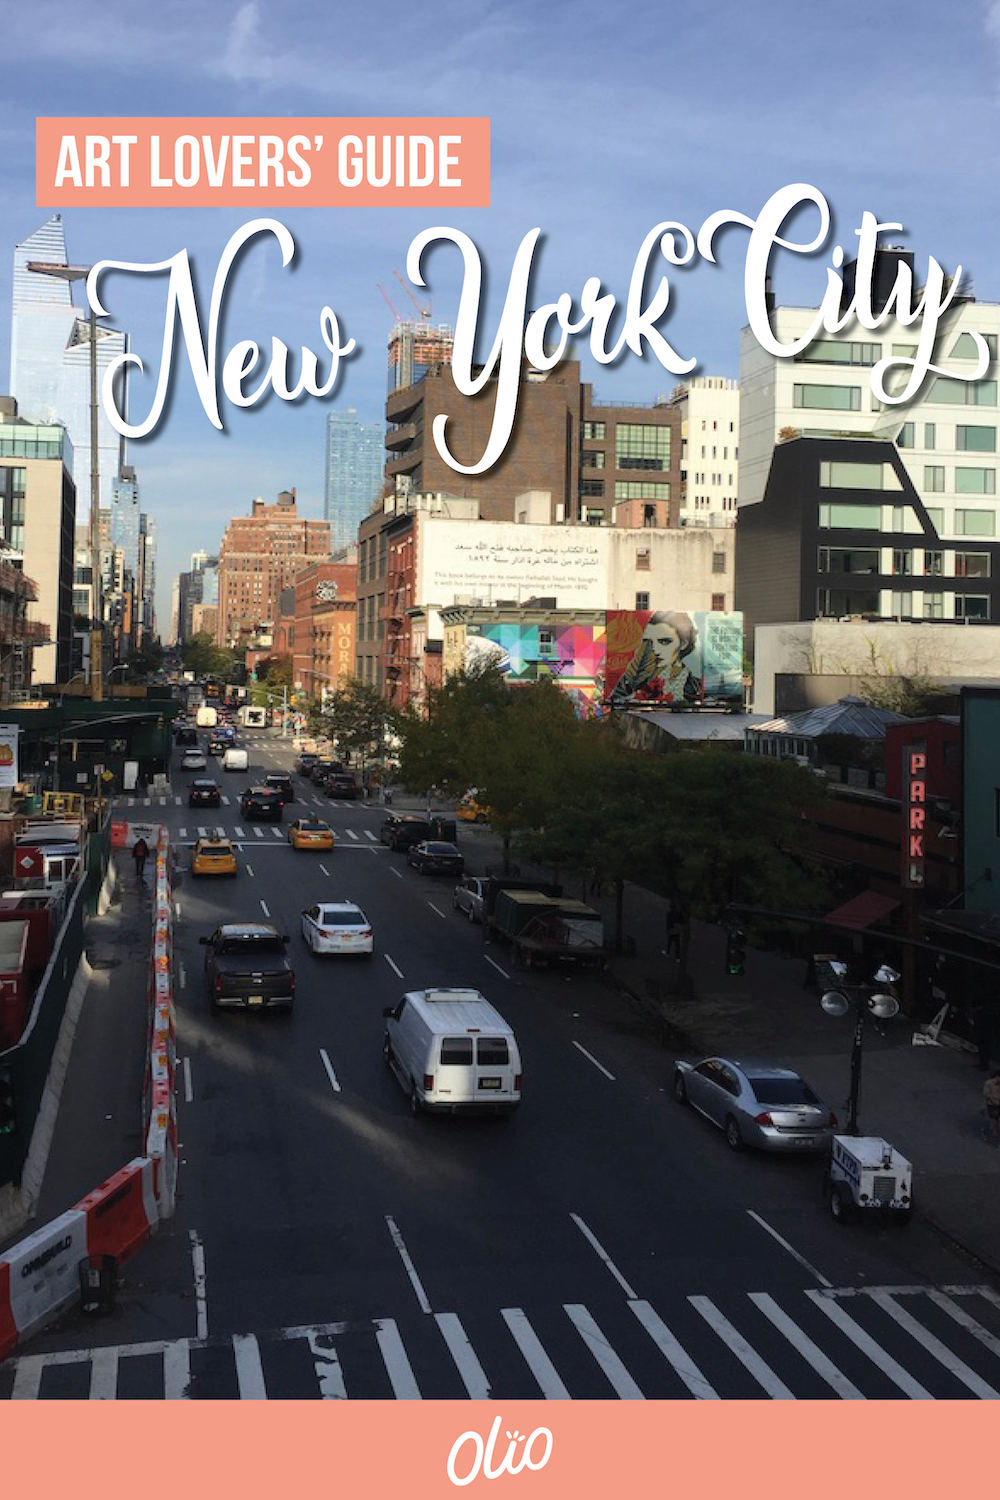 Don't miss this art lovers' guide to New York City! Whether you're a fan of museums or looking for something off the beaten path, these inspiring attractions are sure to spark your creativity. From a trip to the Metropolitan Museum of Art to an unexpected restroom, there's something for everyone. #NewYork #NewYorkCity #ArtLovers #PublicArt #Museums